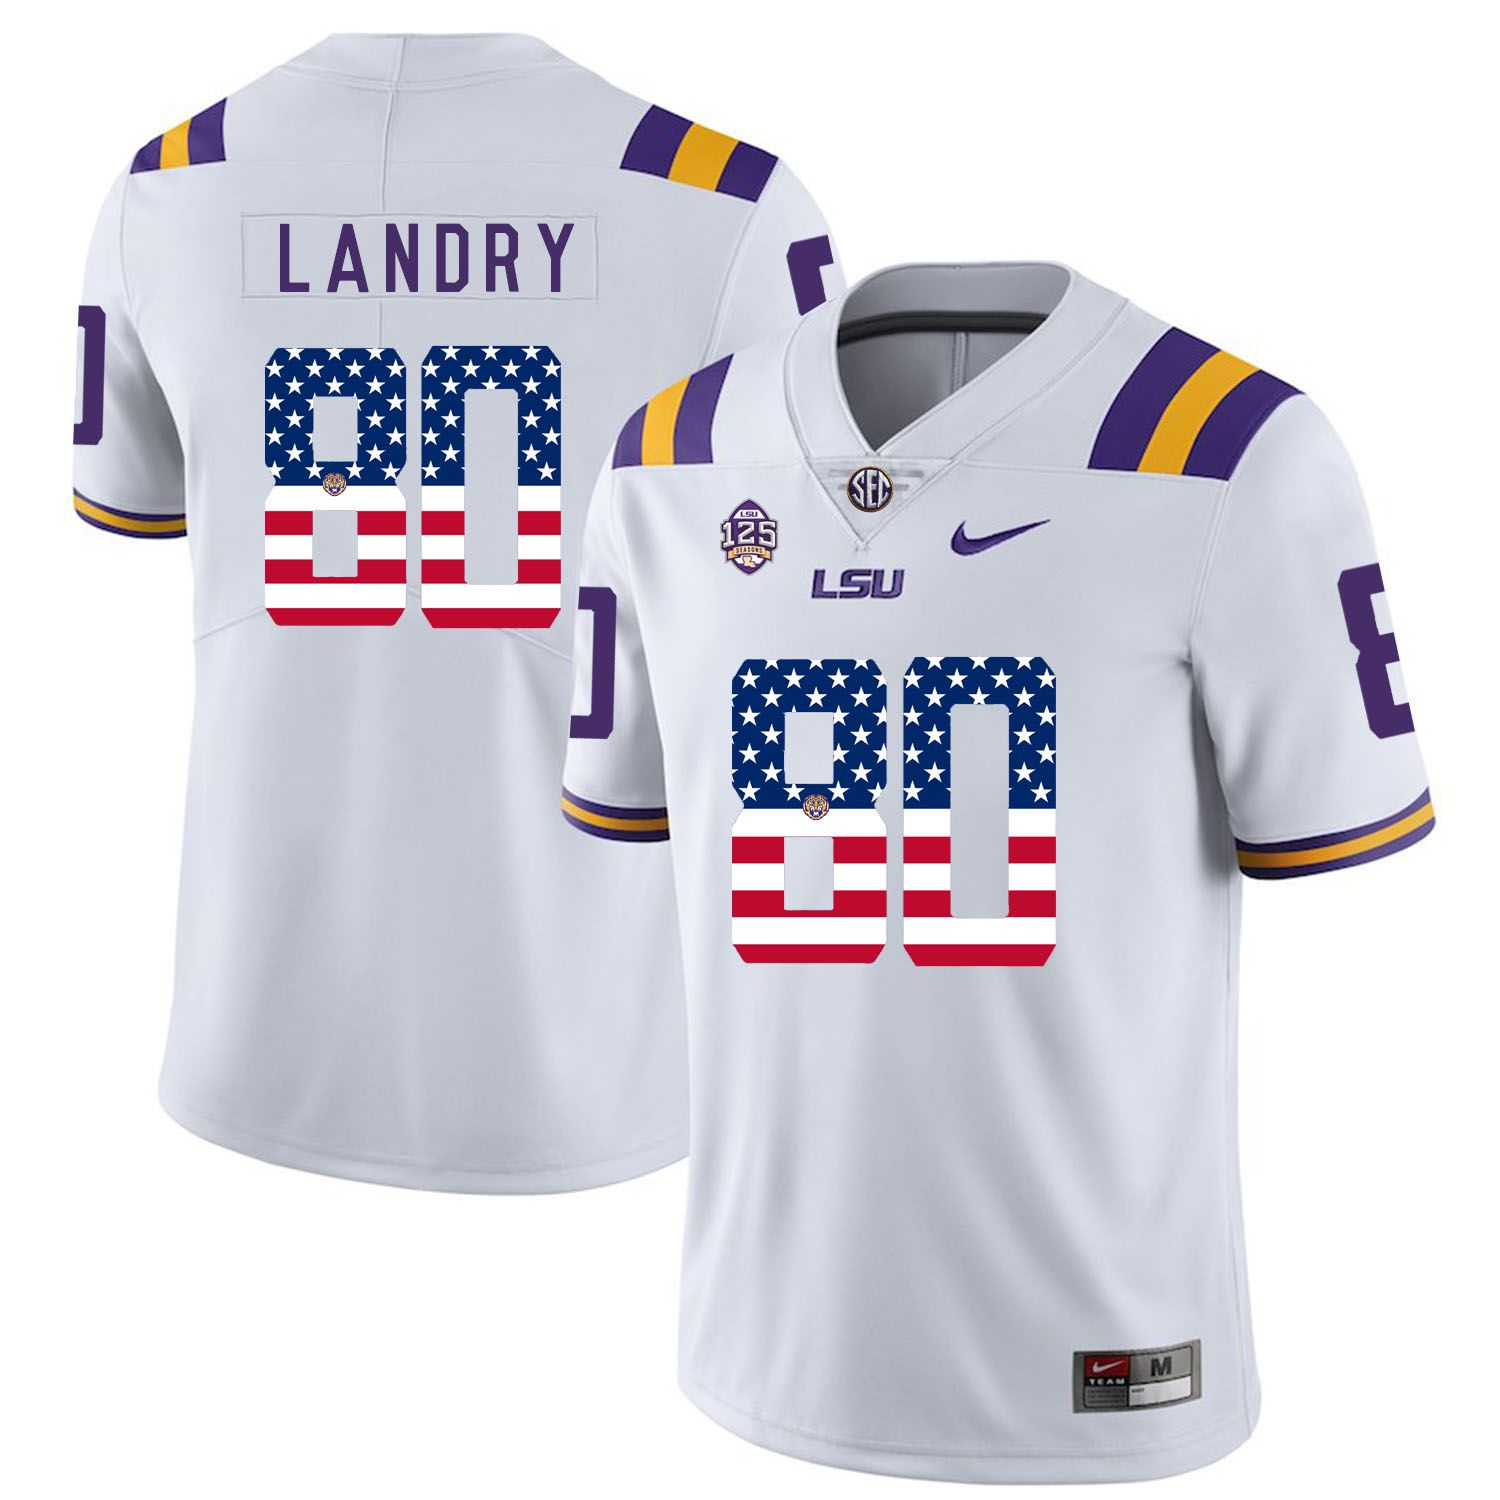 Men LSU Tigers 80 Landry White Flag Customized NCAA Jerseys